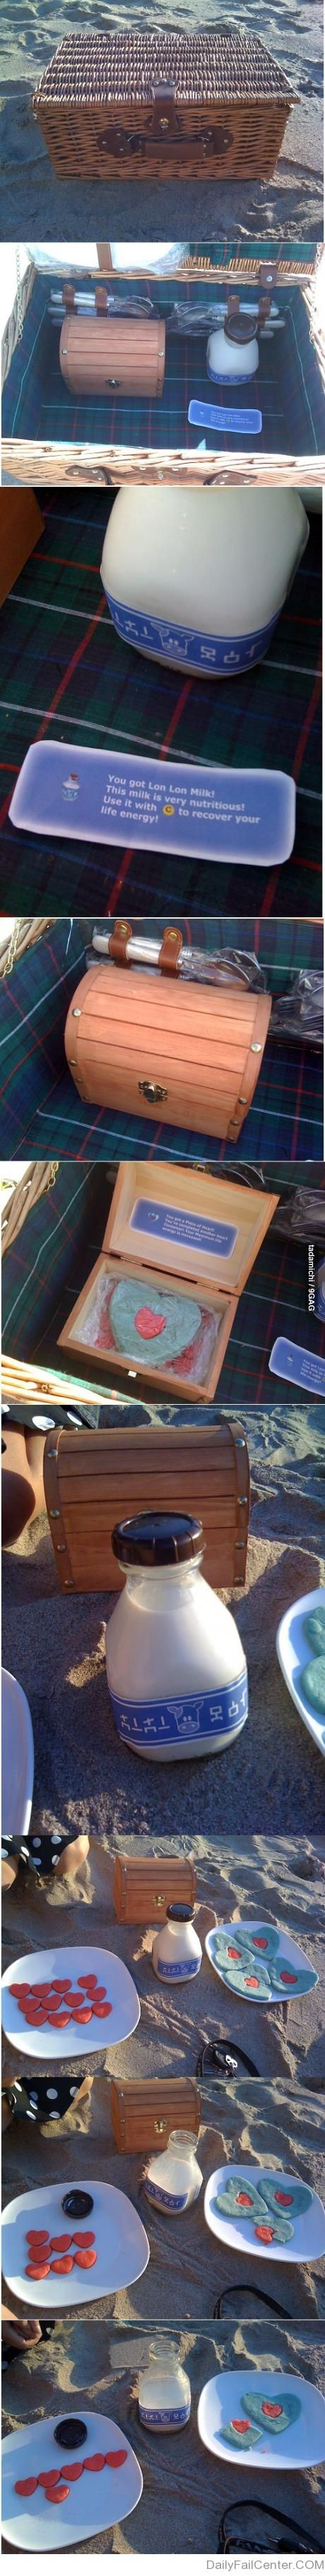 Zelda picnic- this is too cute!! i would die is someone did this for me!!! :D